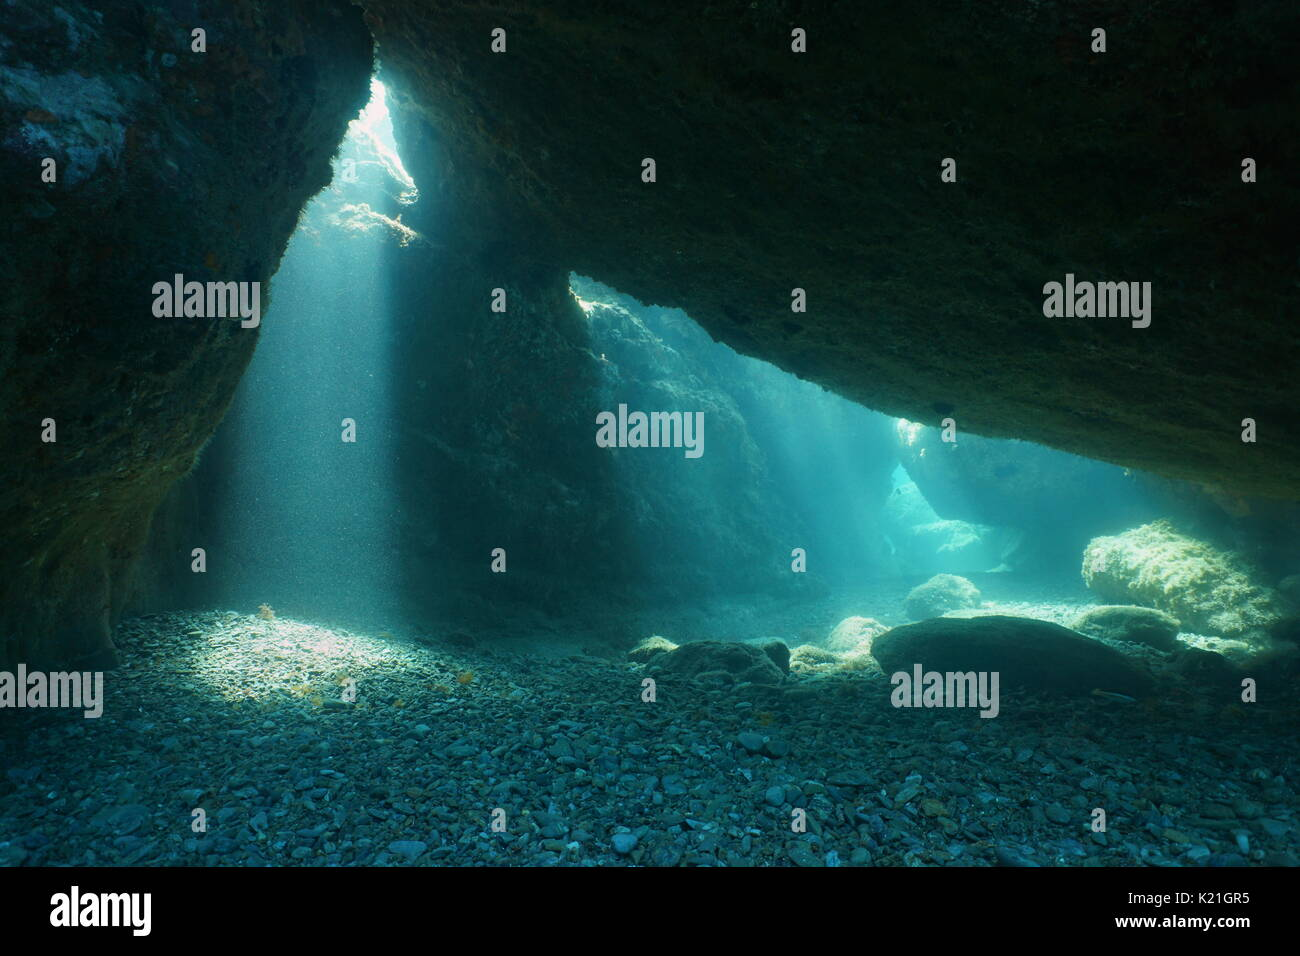 Below big rocks underwater with sunbeam from hole, Mediterranean sea, natural scene, Pyrenees Orientales, Roussillon, France - Stock Image